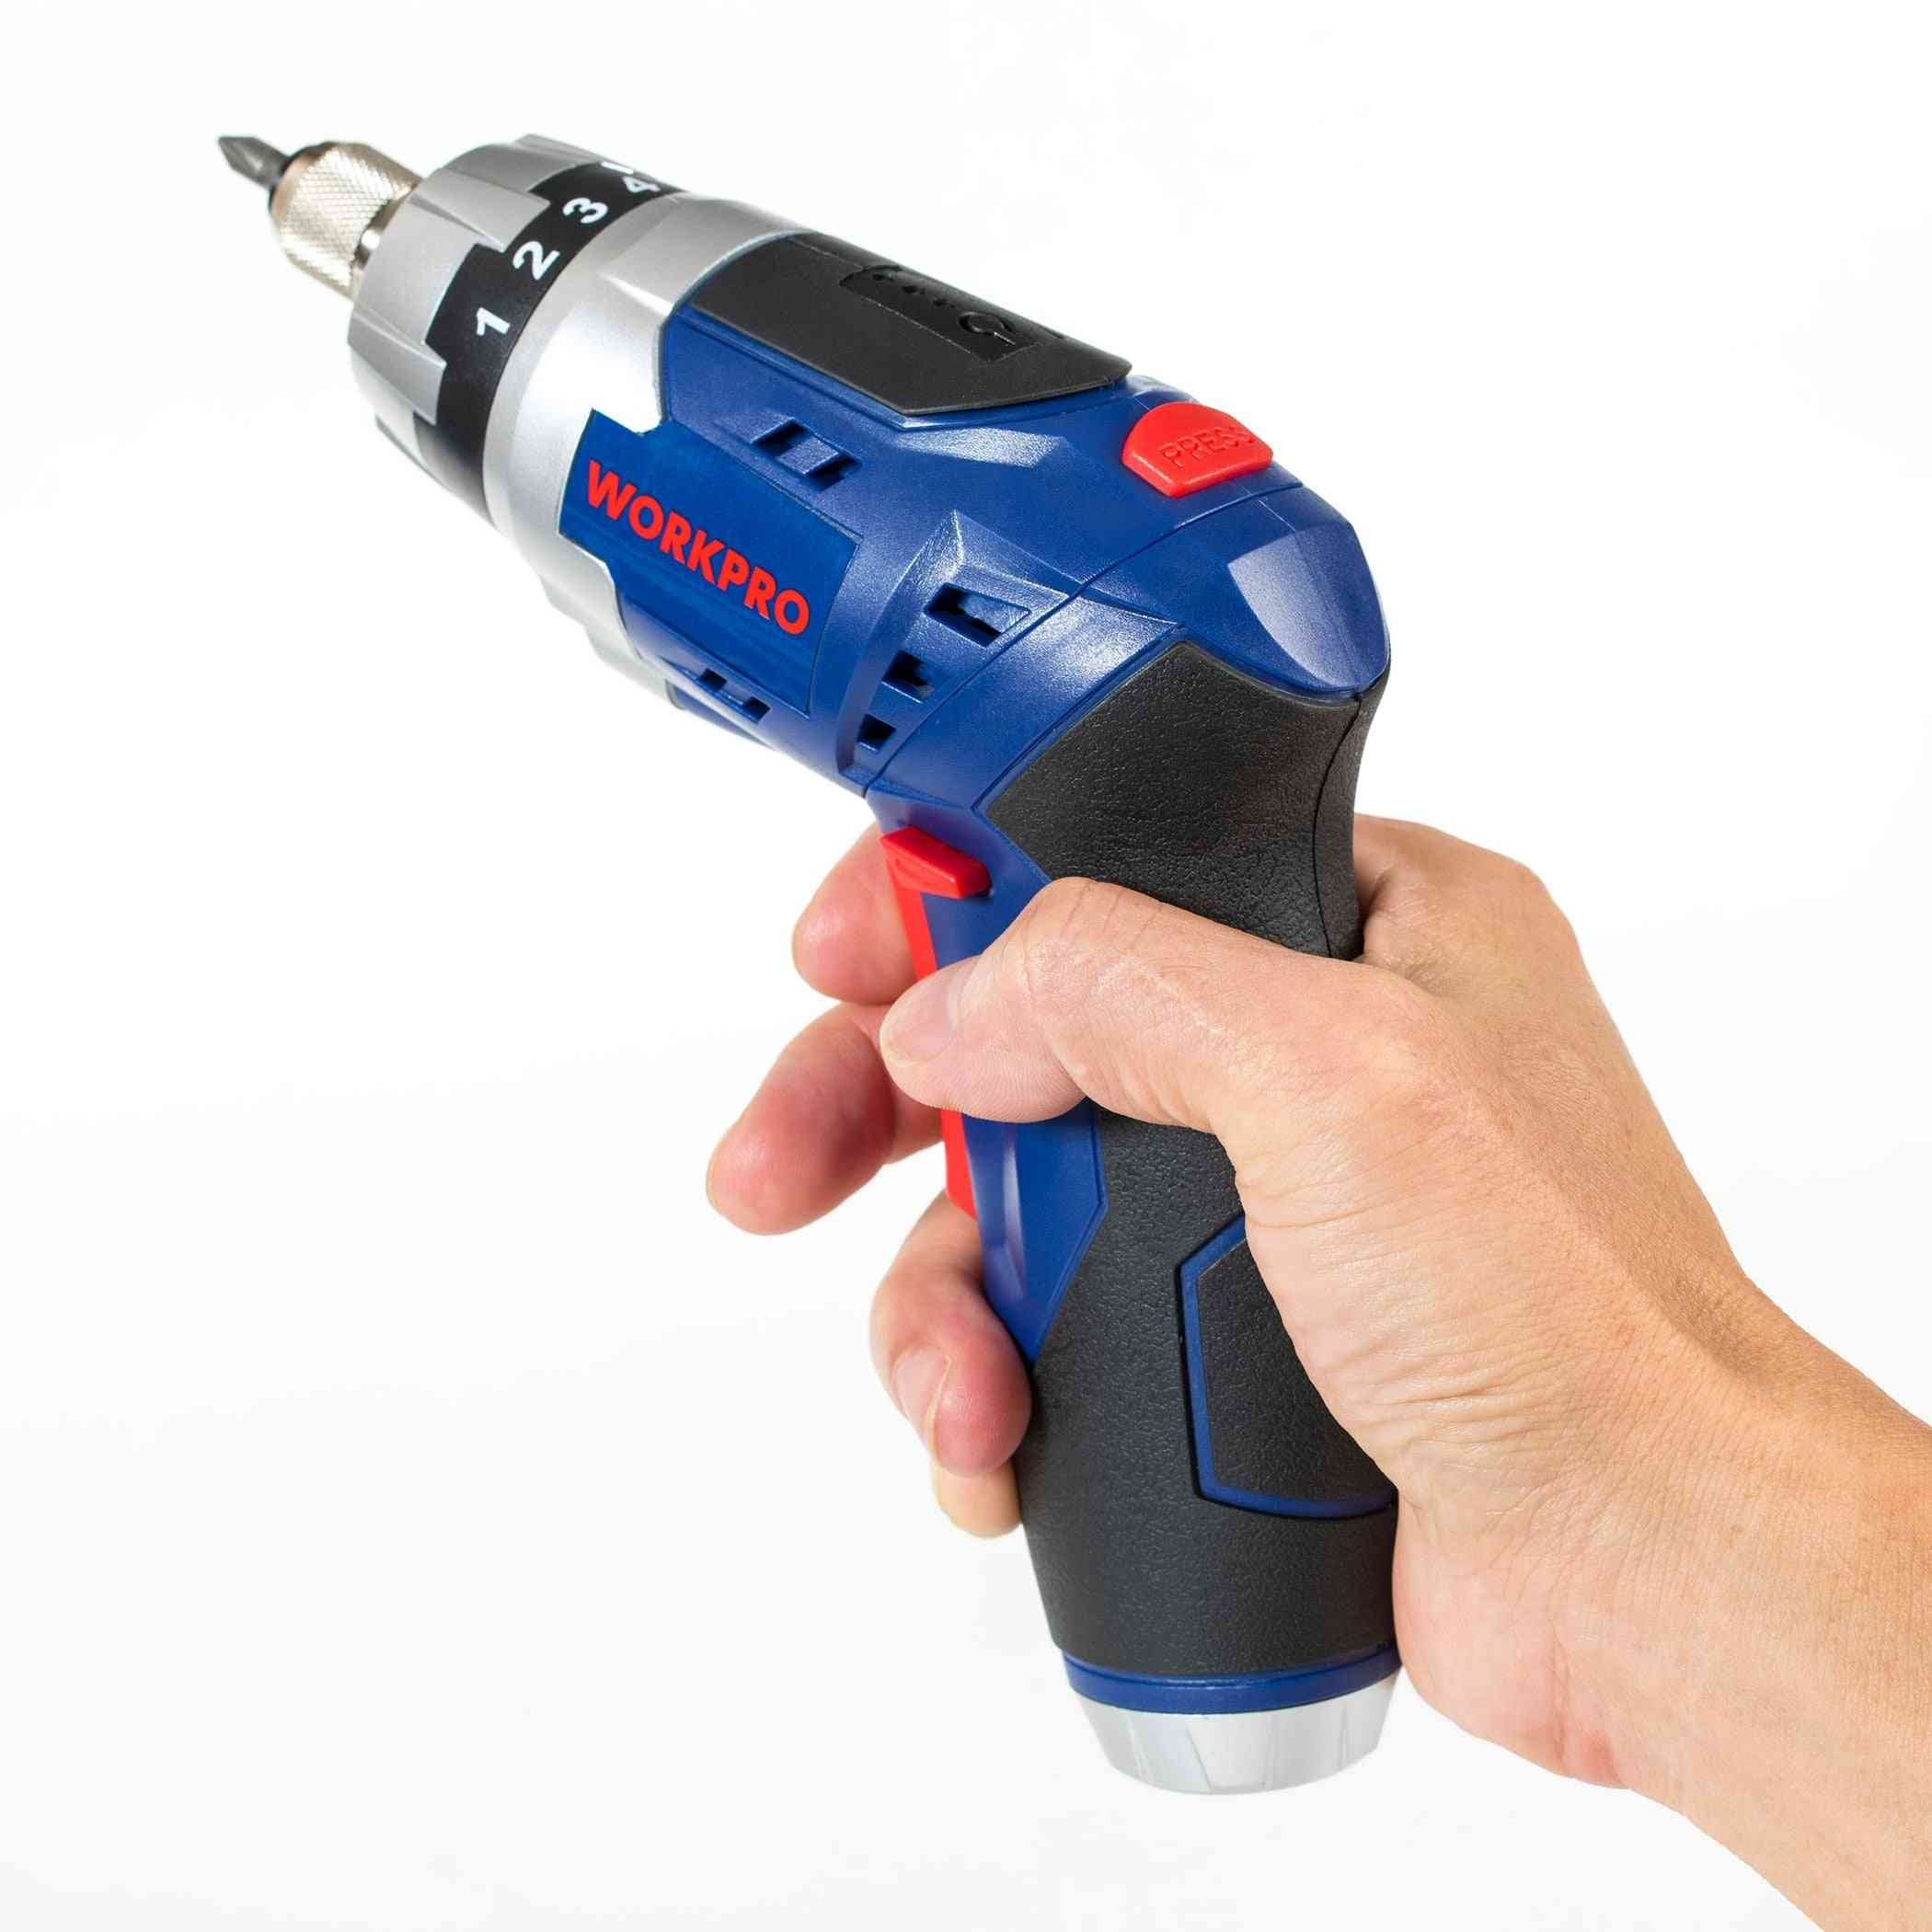 Foldable, Electric, Rechargeable, Screwdrivers With Work Light